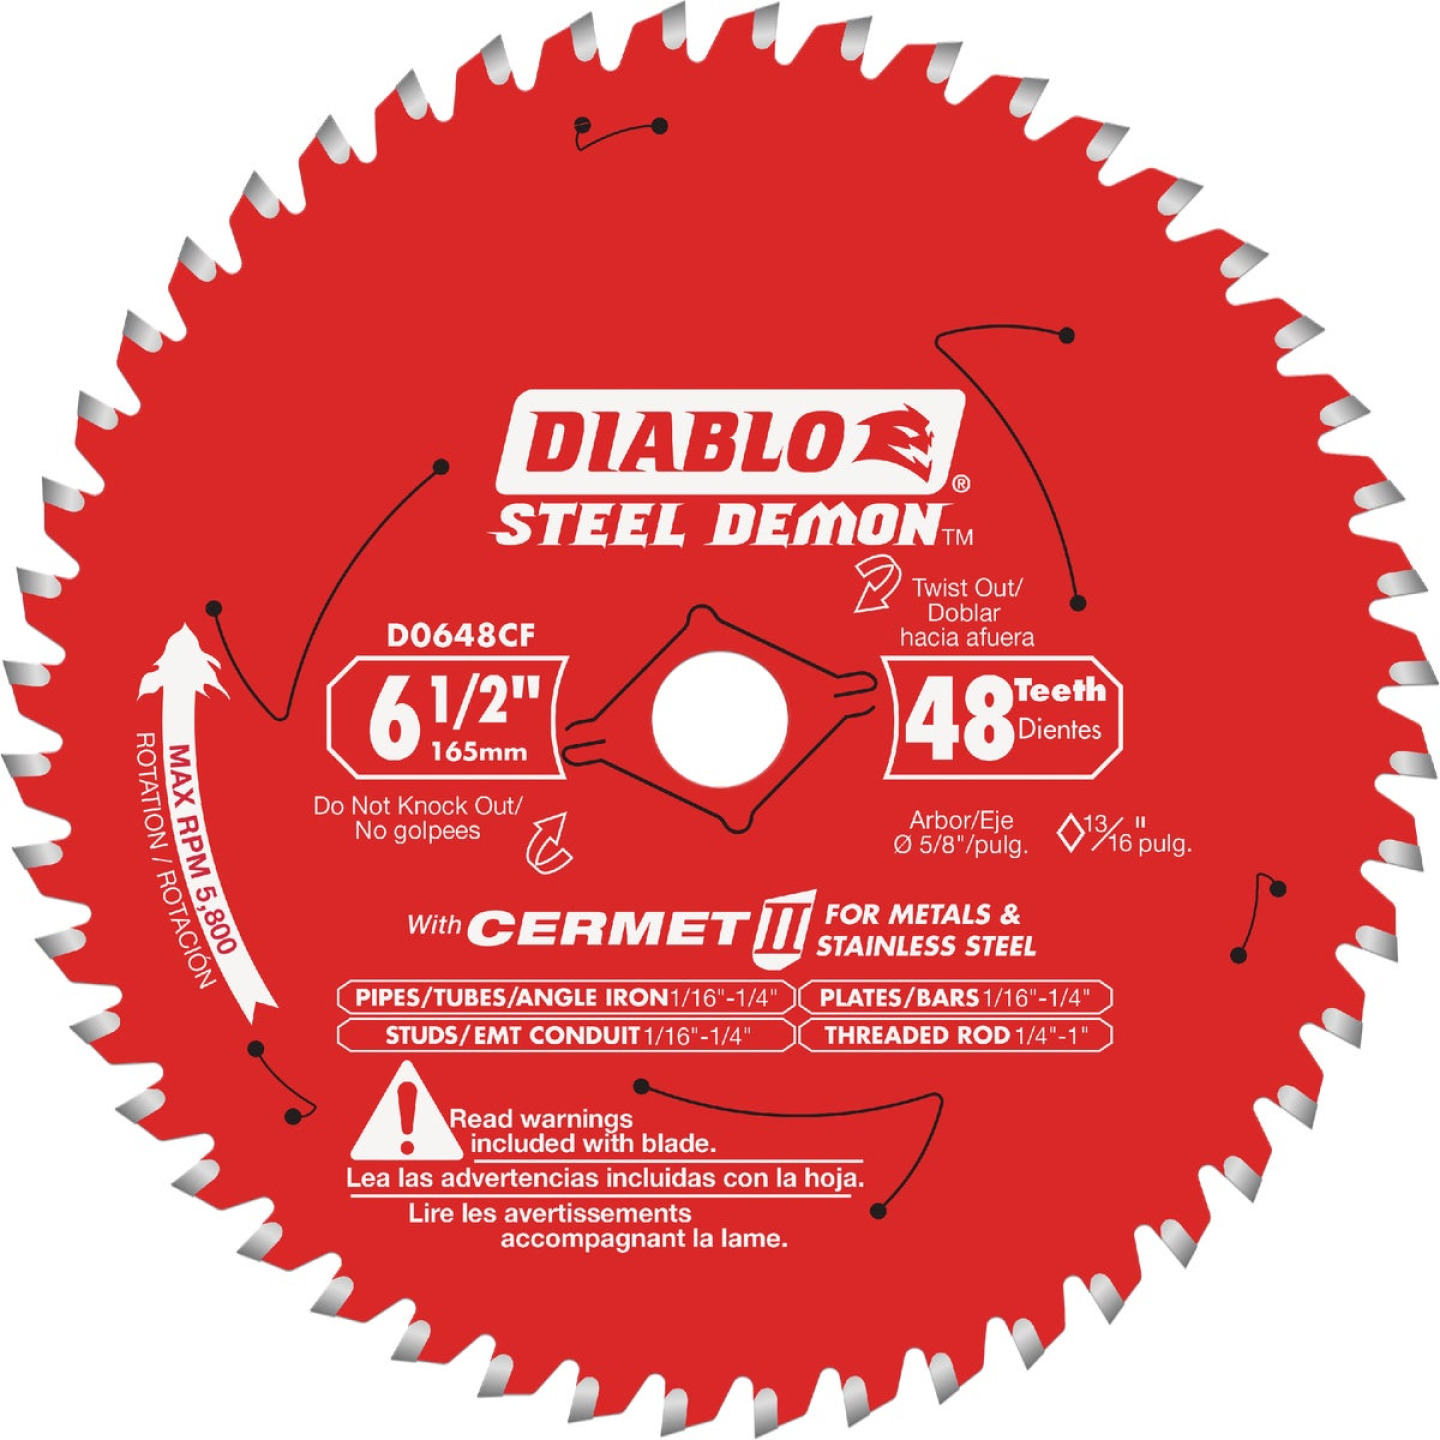 Diablo Steel Demon 6-1/2 in. x 48 Tooth Cermett II Carbide Metals and Stainless Steel Cutting Saw Blade, Bulk Image 1